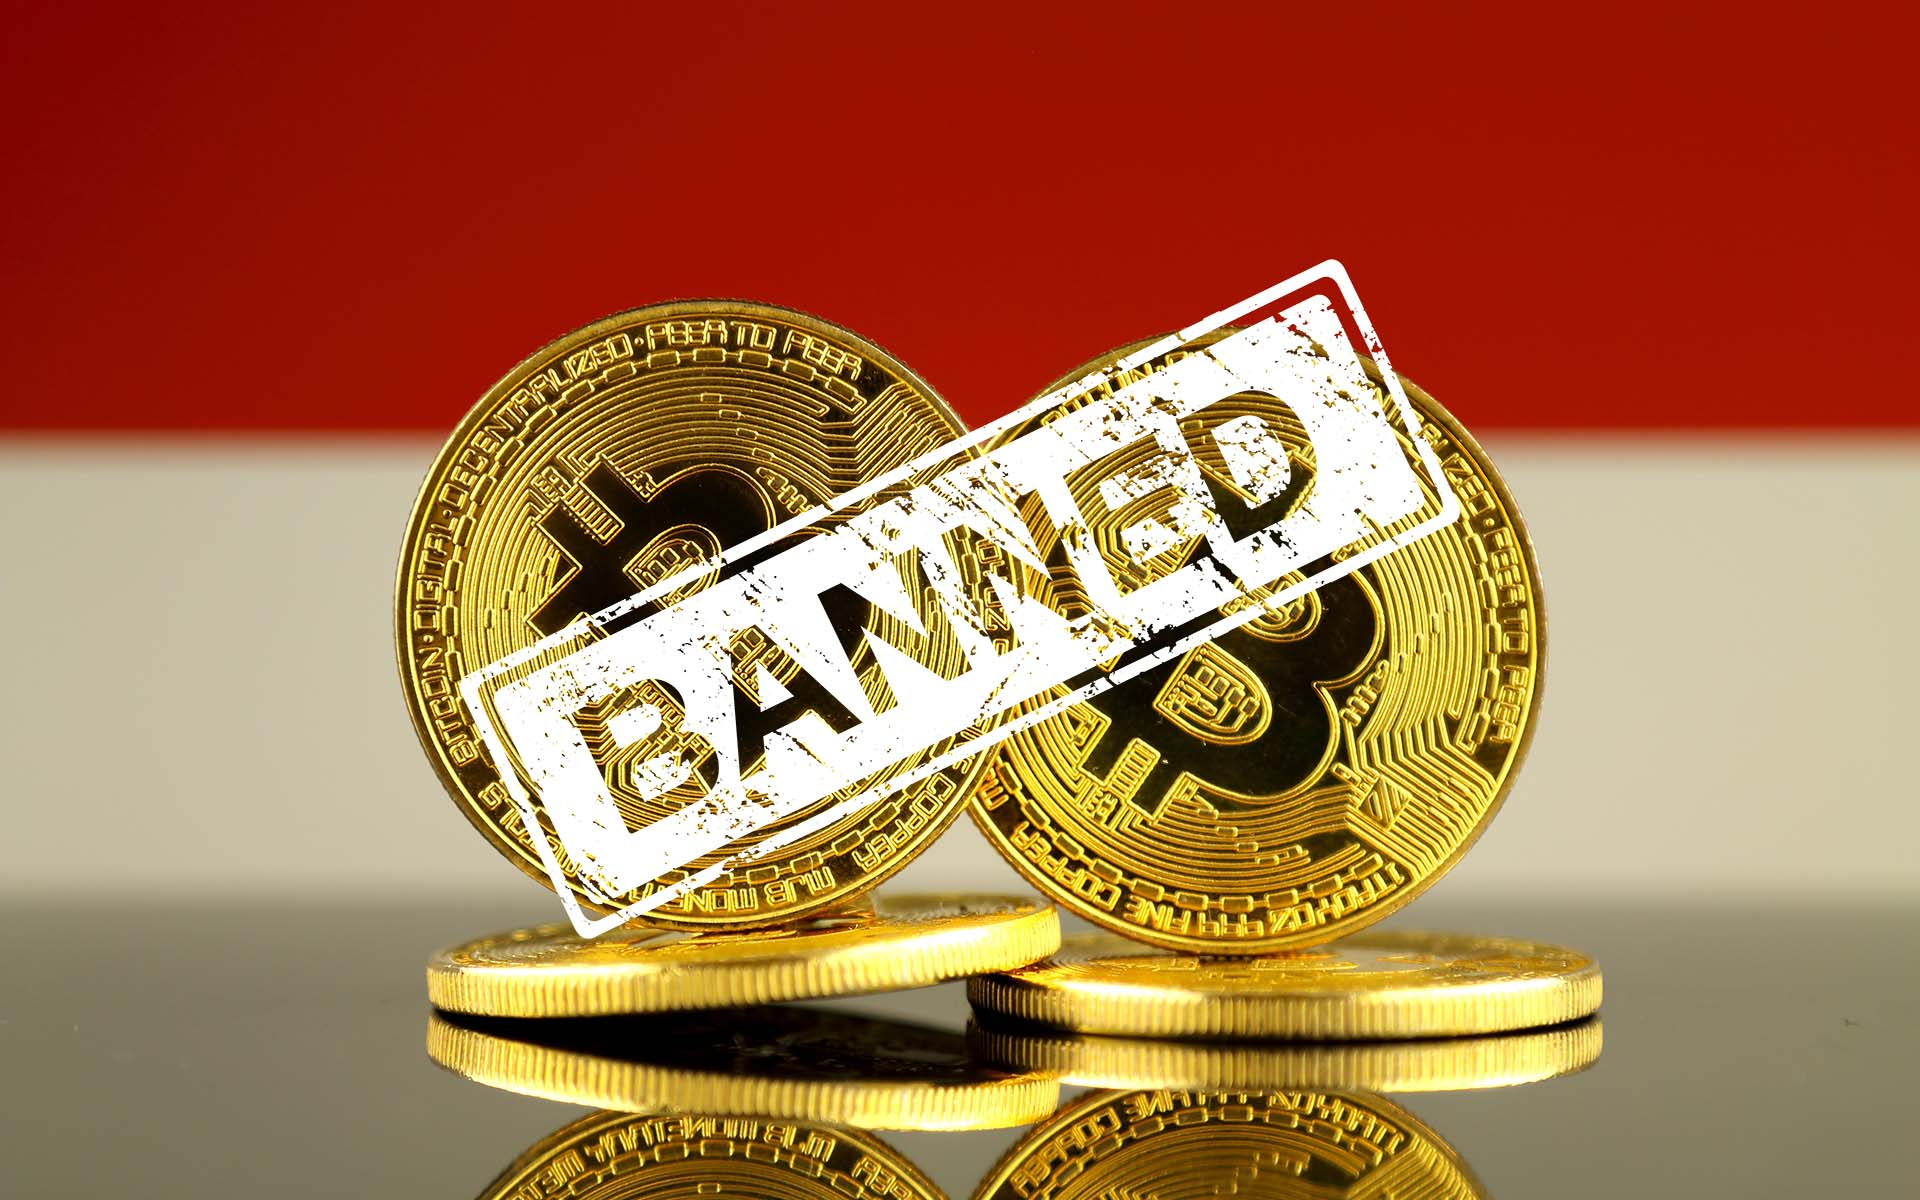 The Ban on Cryptocurrencies Continues – Indonesia Joins Ranks with Morocco,  Ecuador, and Others